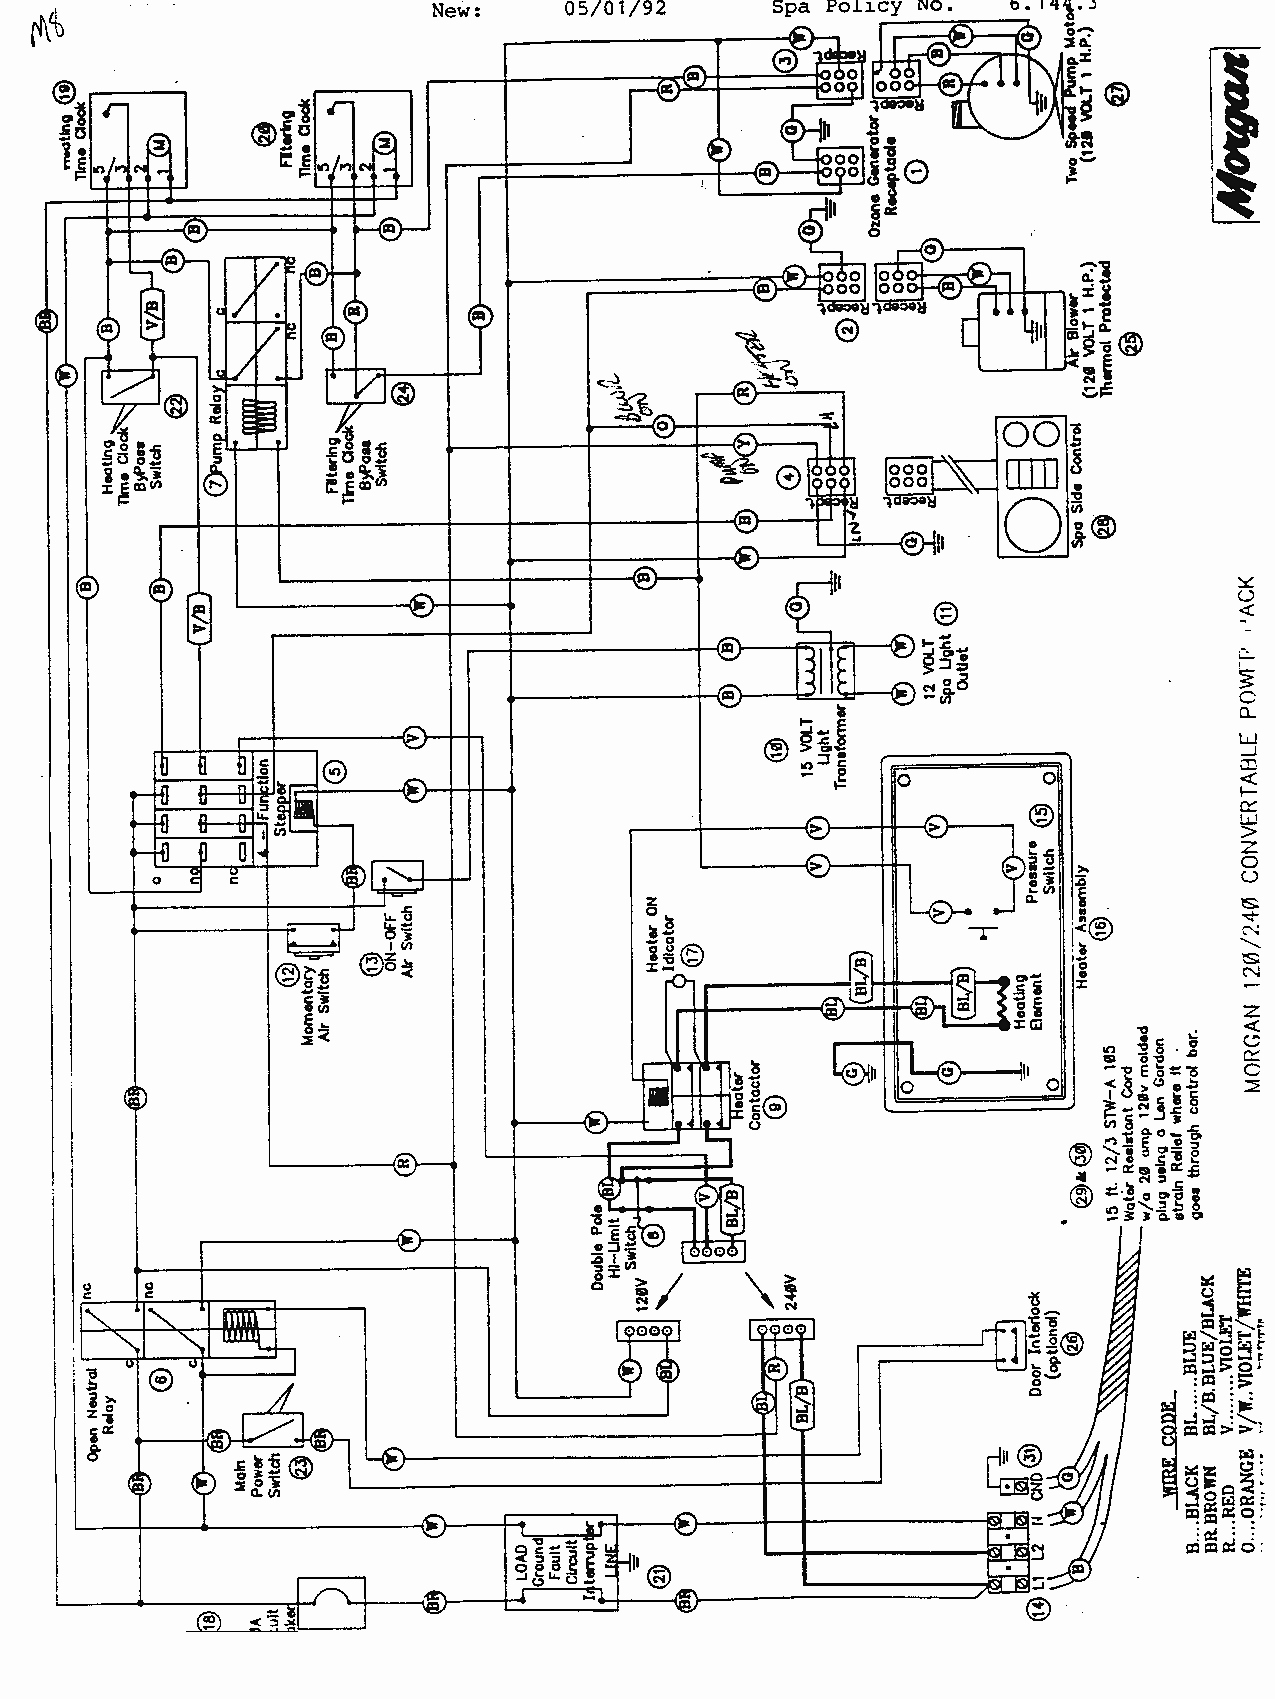 wiring diagram for proshield hot tub